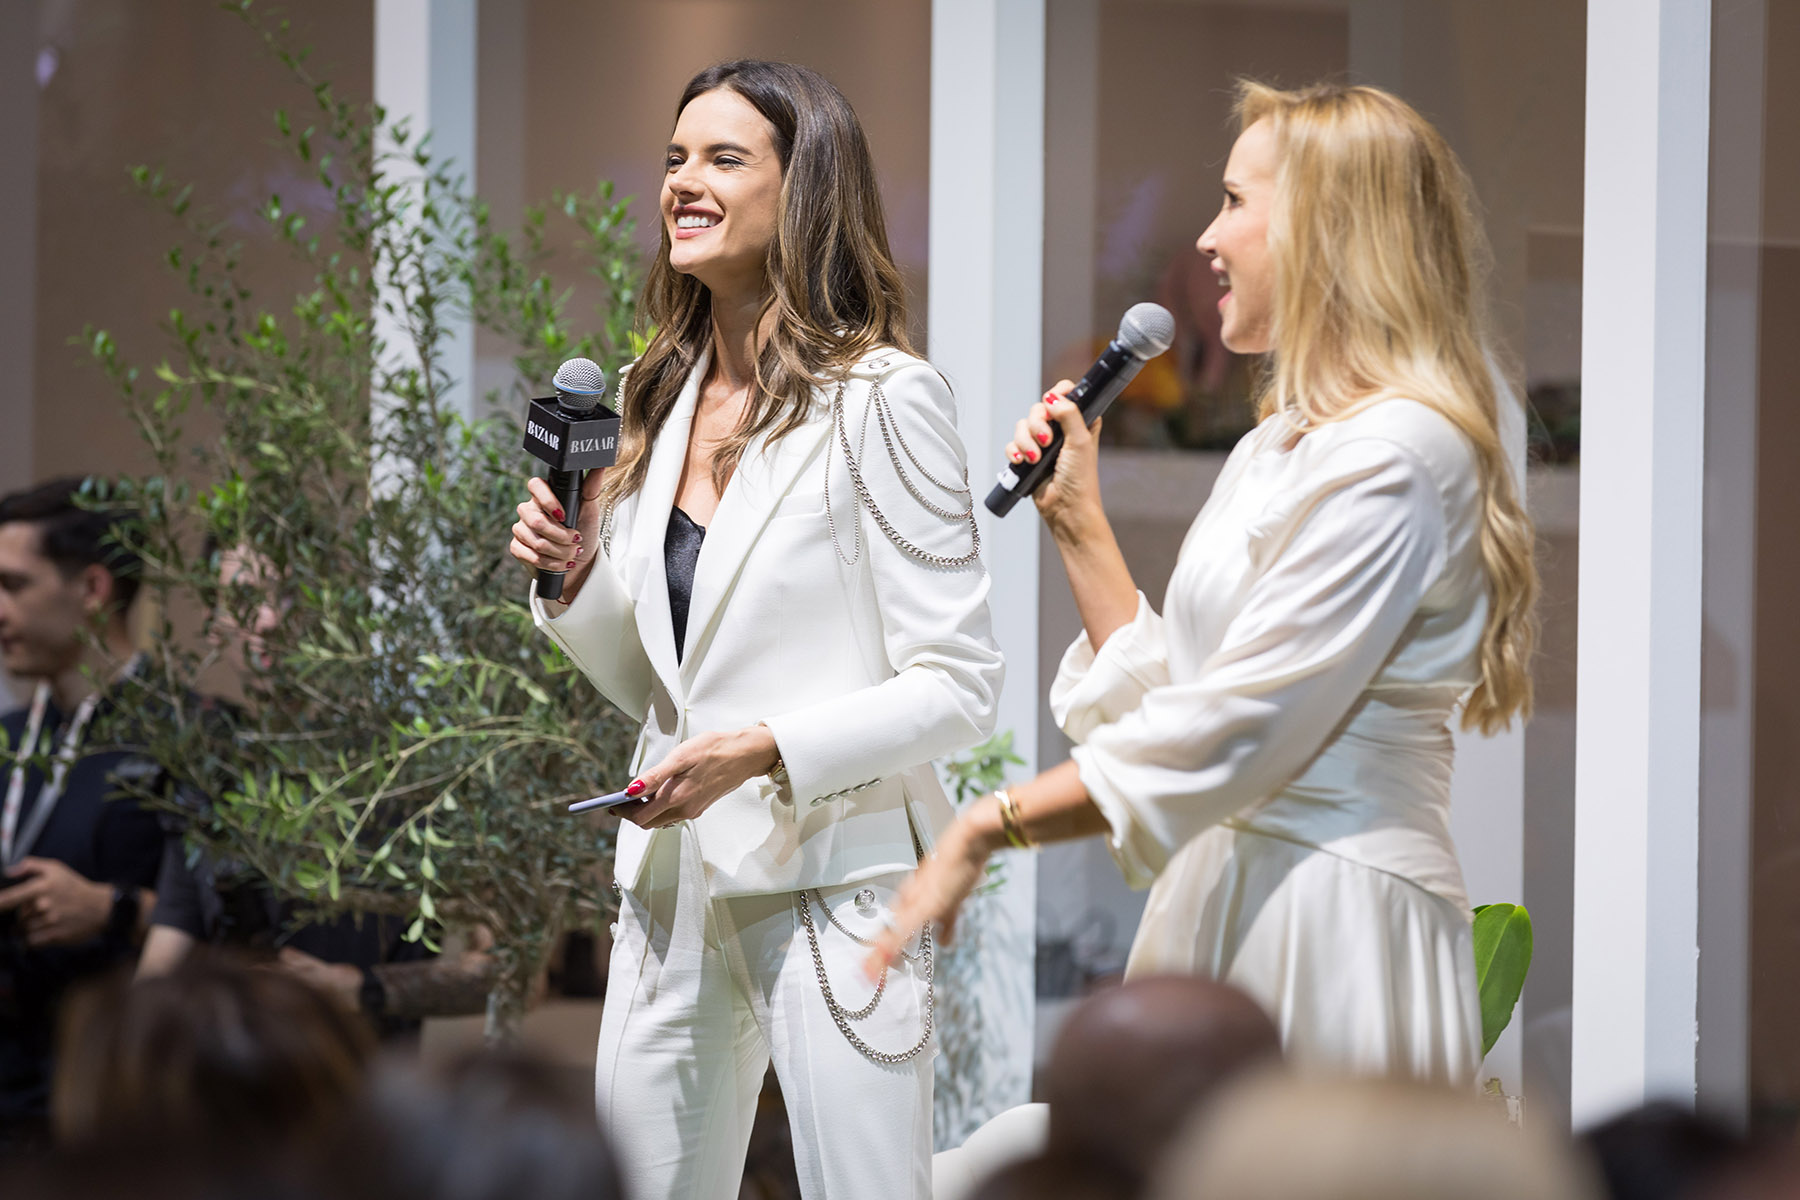 Louise Nichol interviews Alessandra Ambrosio at Harpers Bazaar House of Fashion by Loesje Kessels Event Photographer Dubai